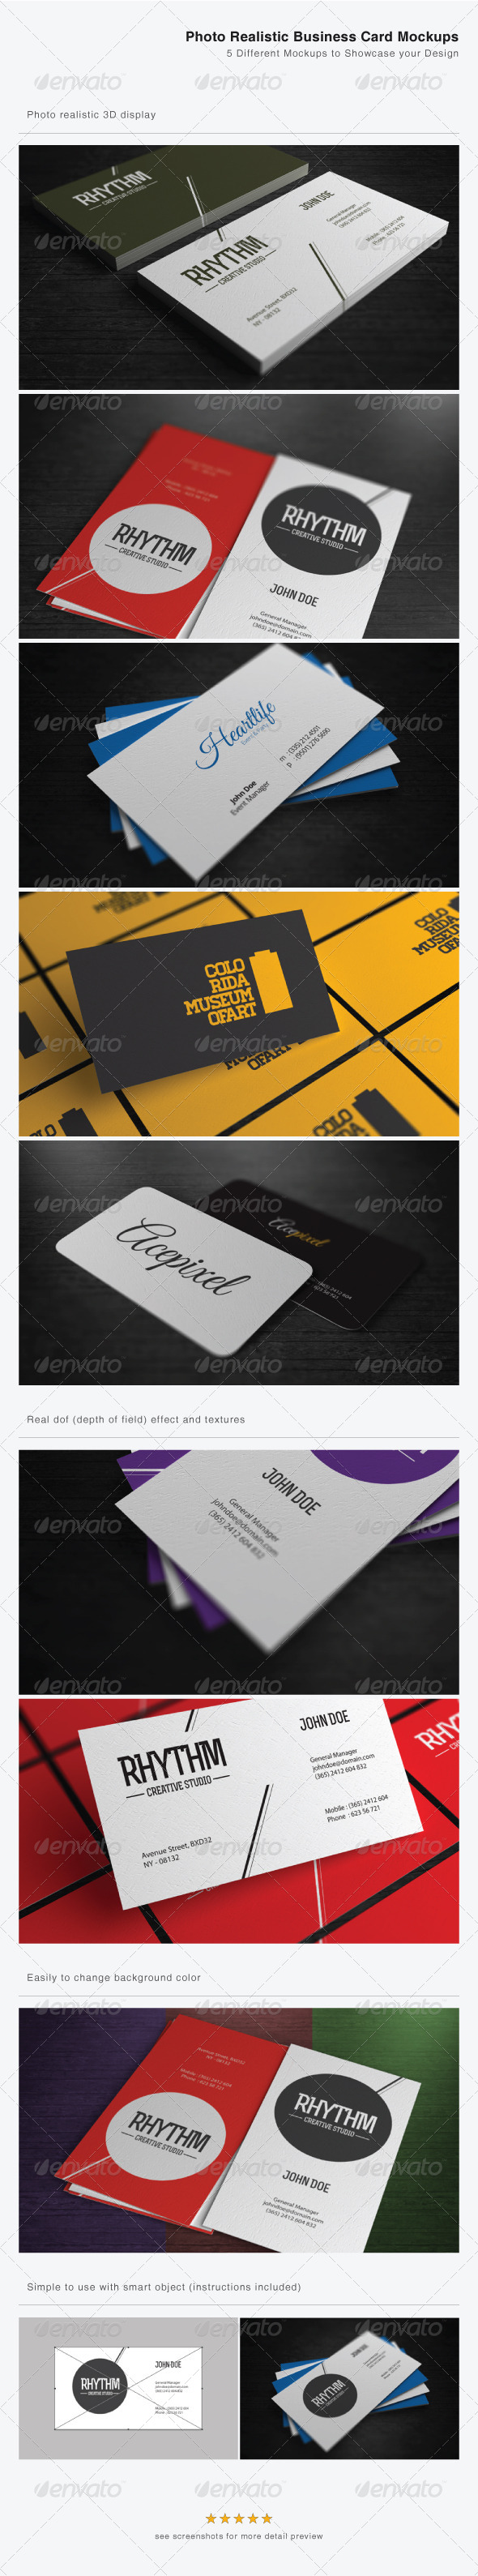 GraphicRiver Photo Realistic Business Card Mockups 4163466